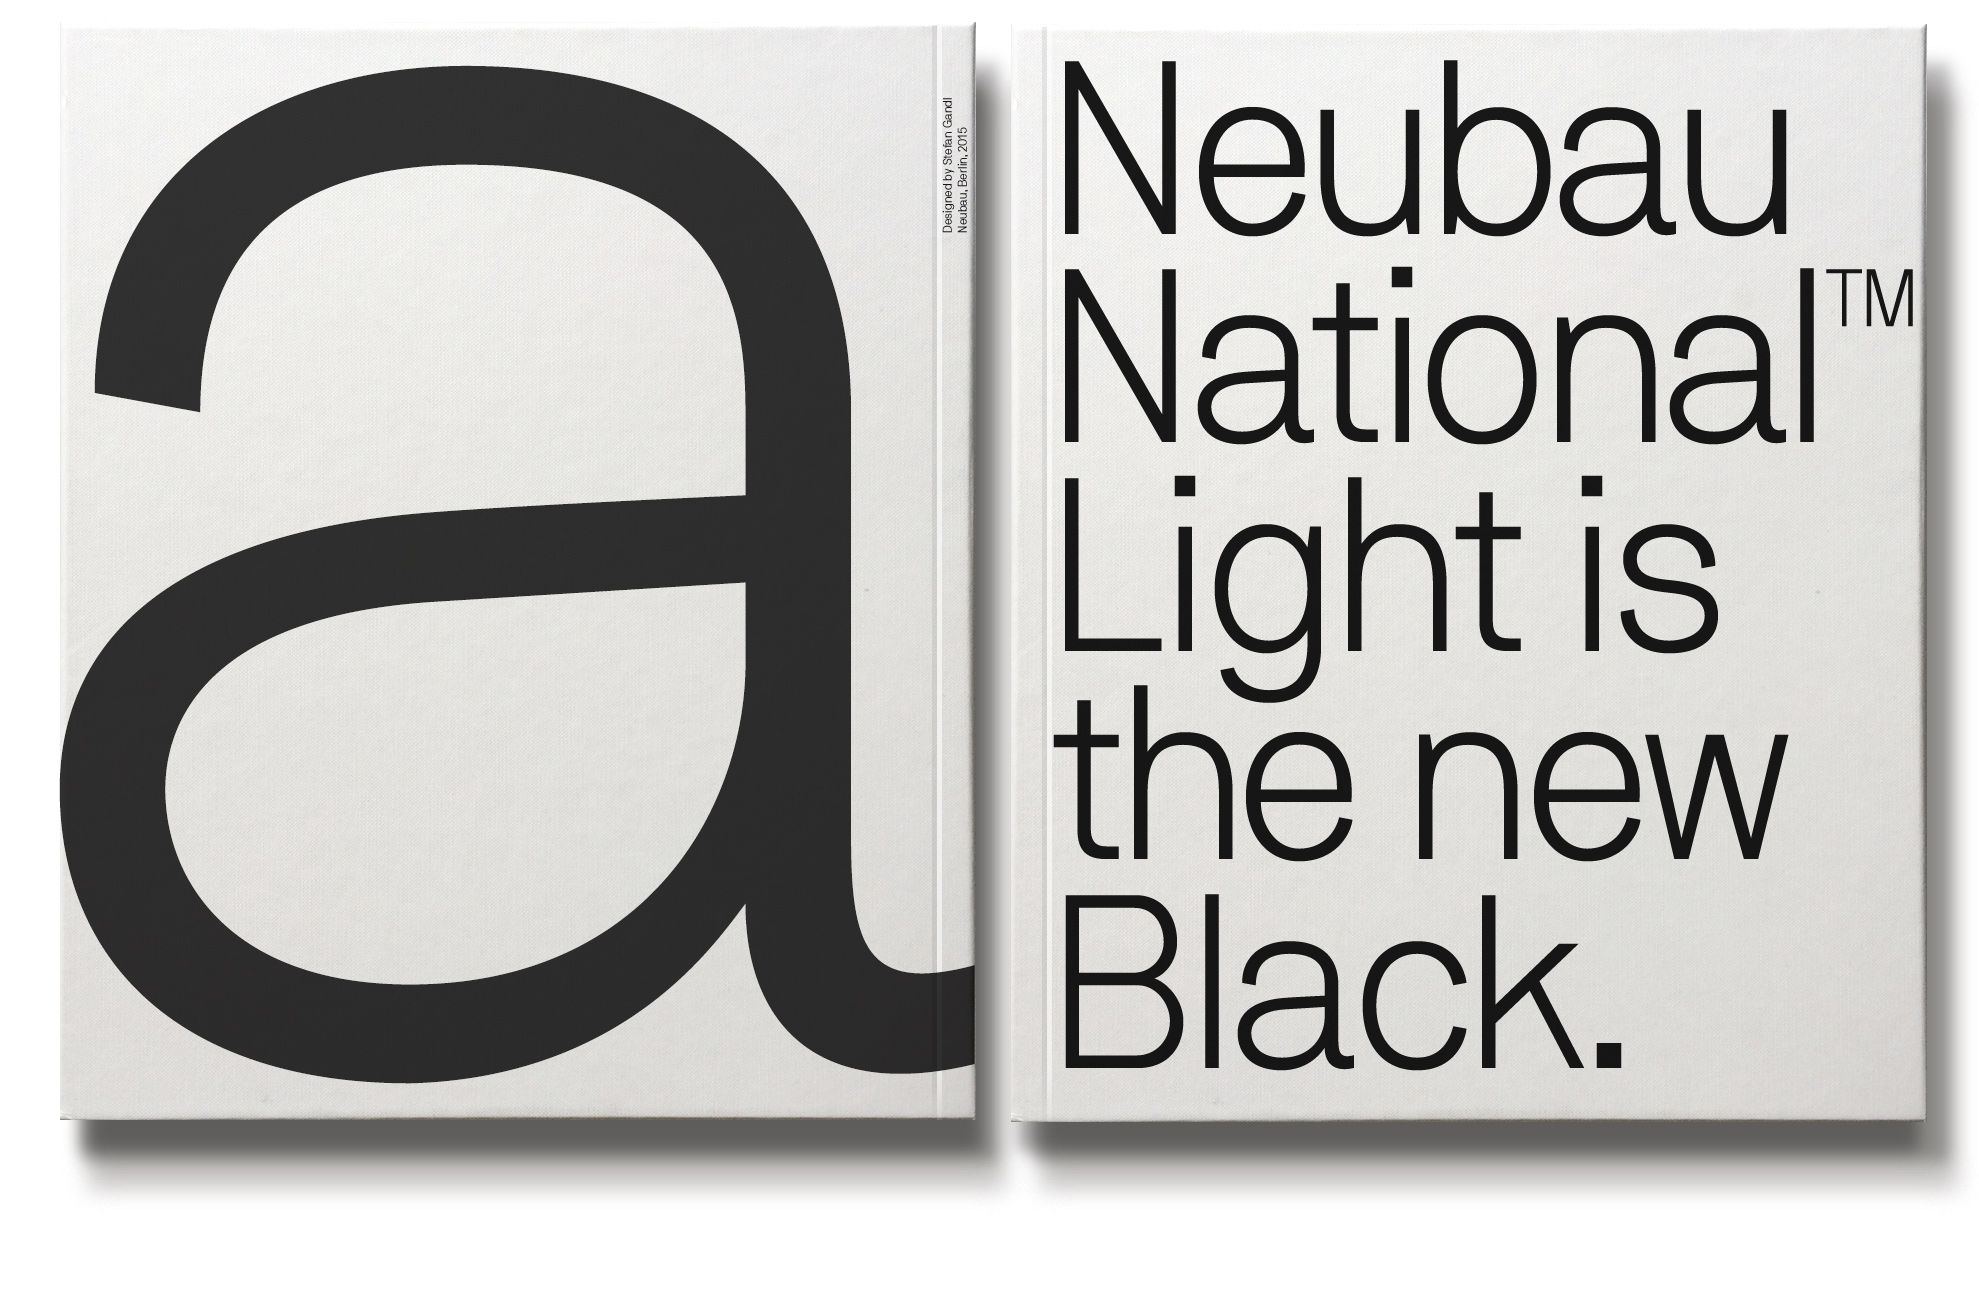 Neubau National Pro Light is the new Black (Typeface) | Design ...